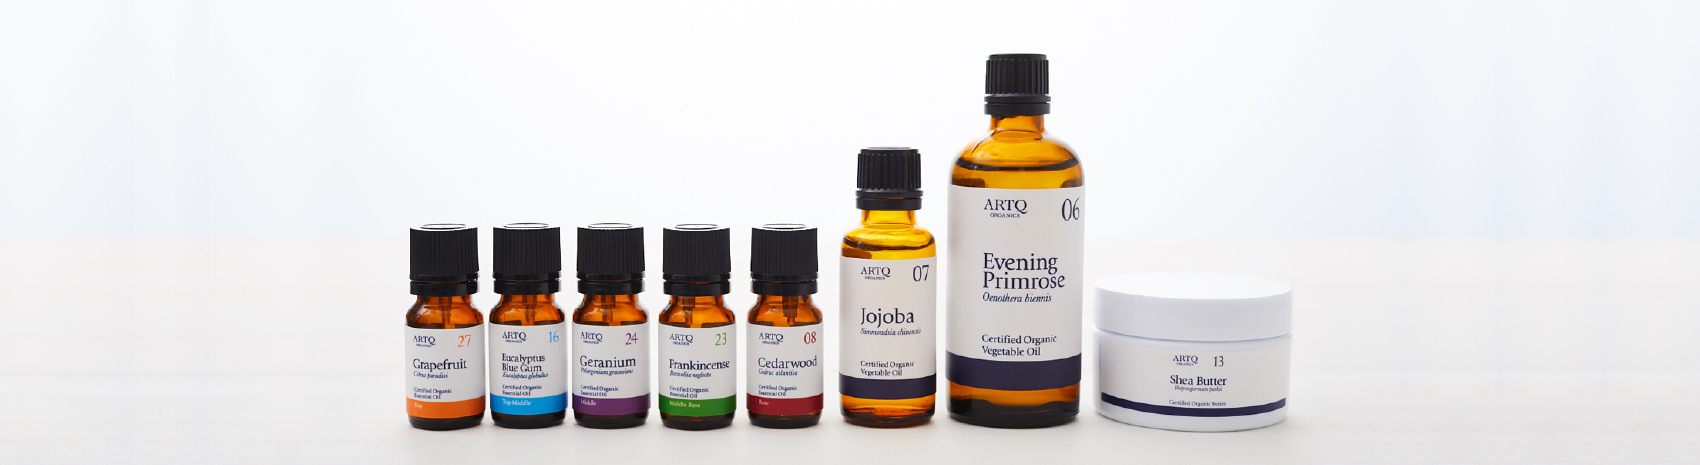 Aromatherapy | Products